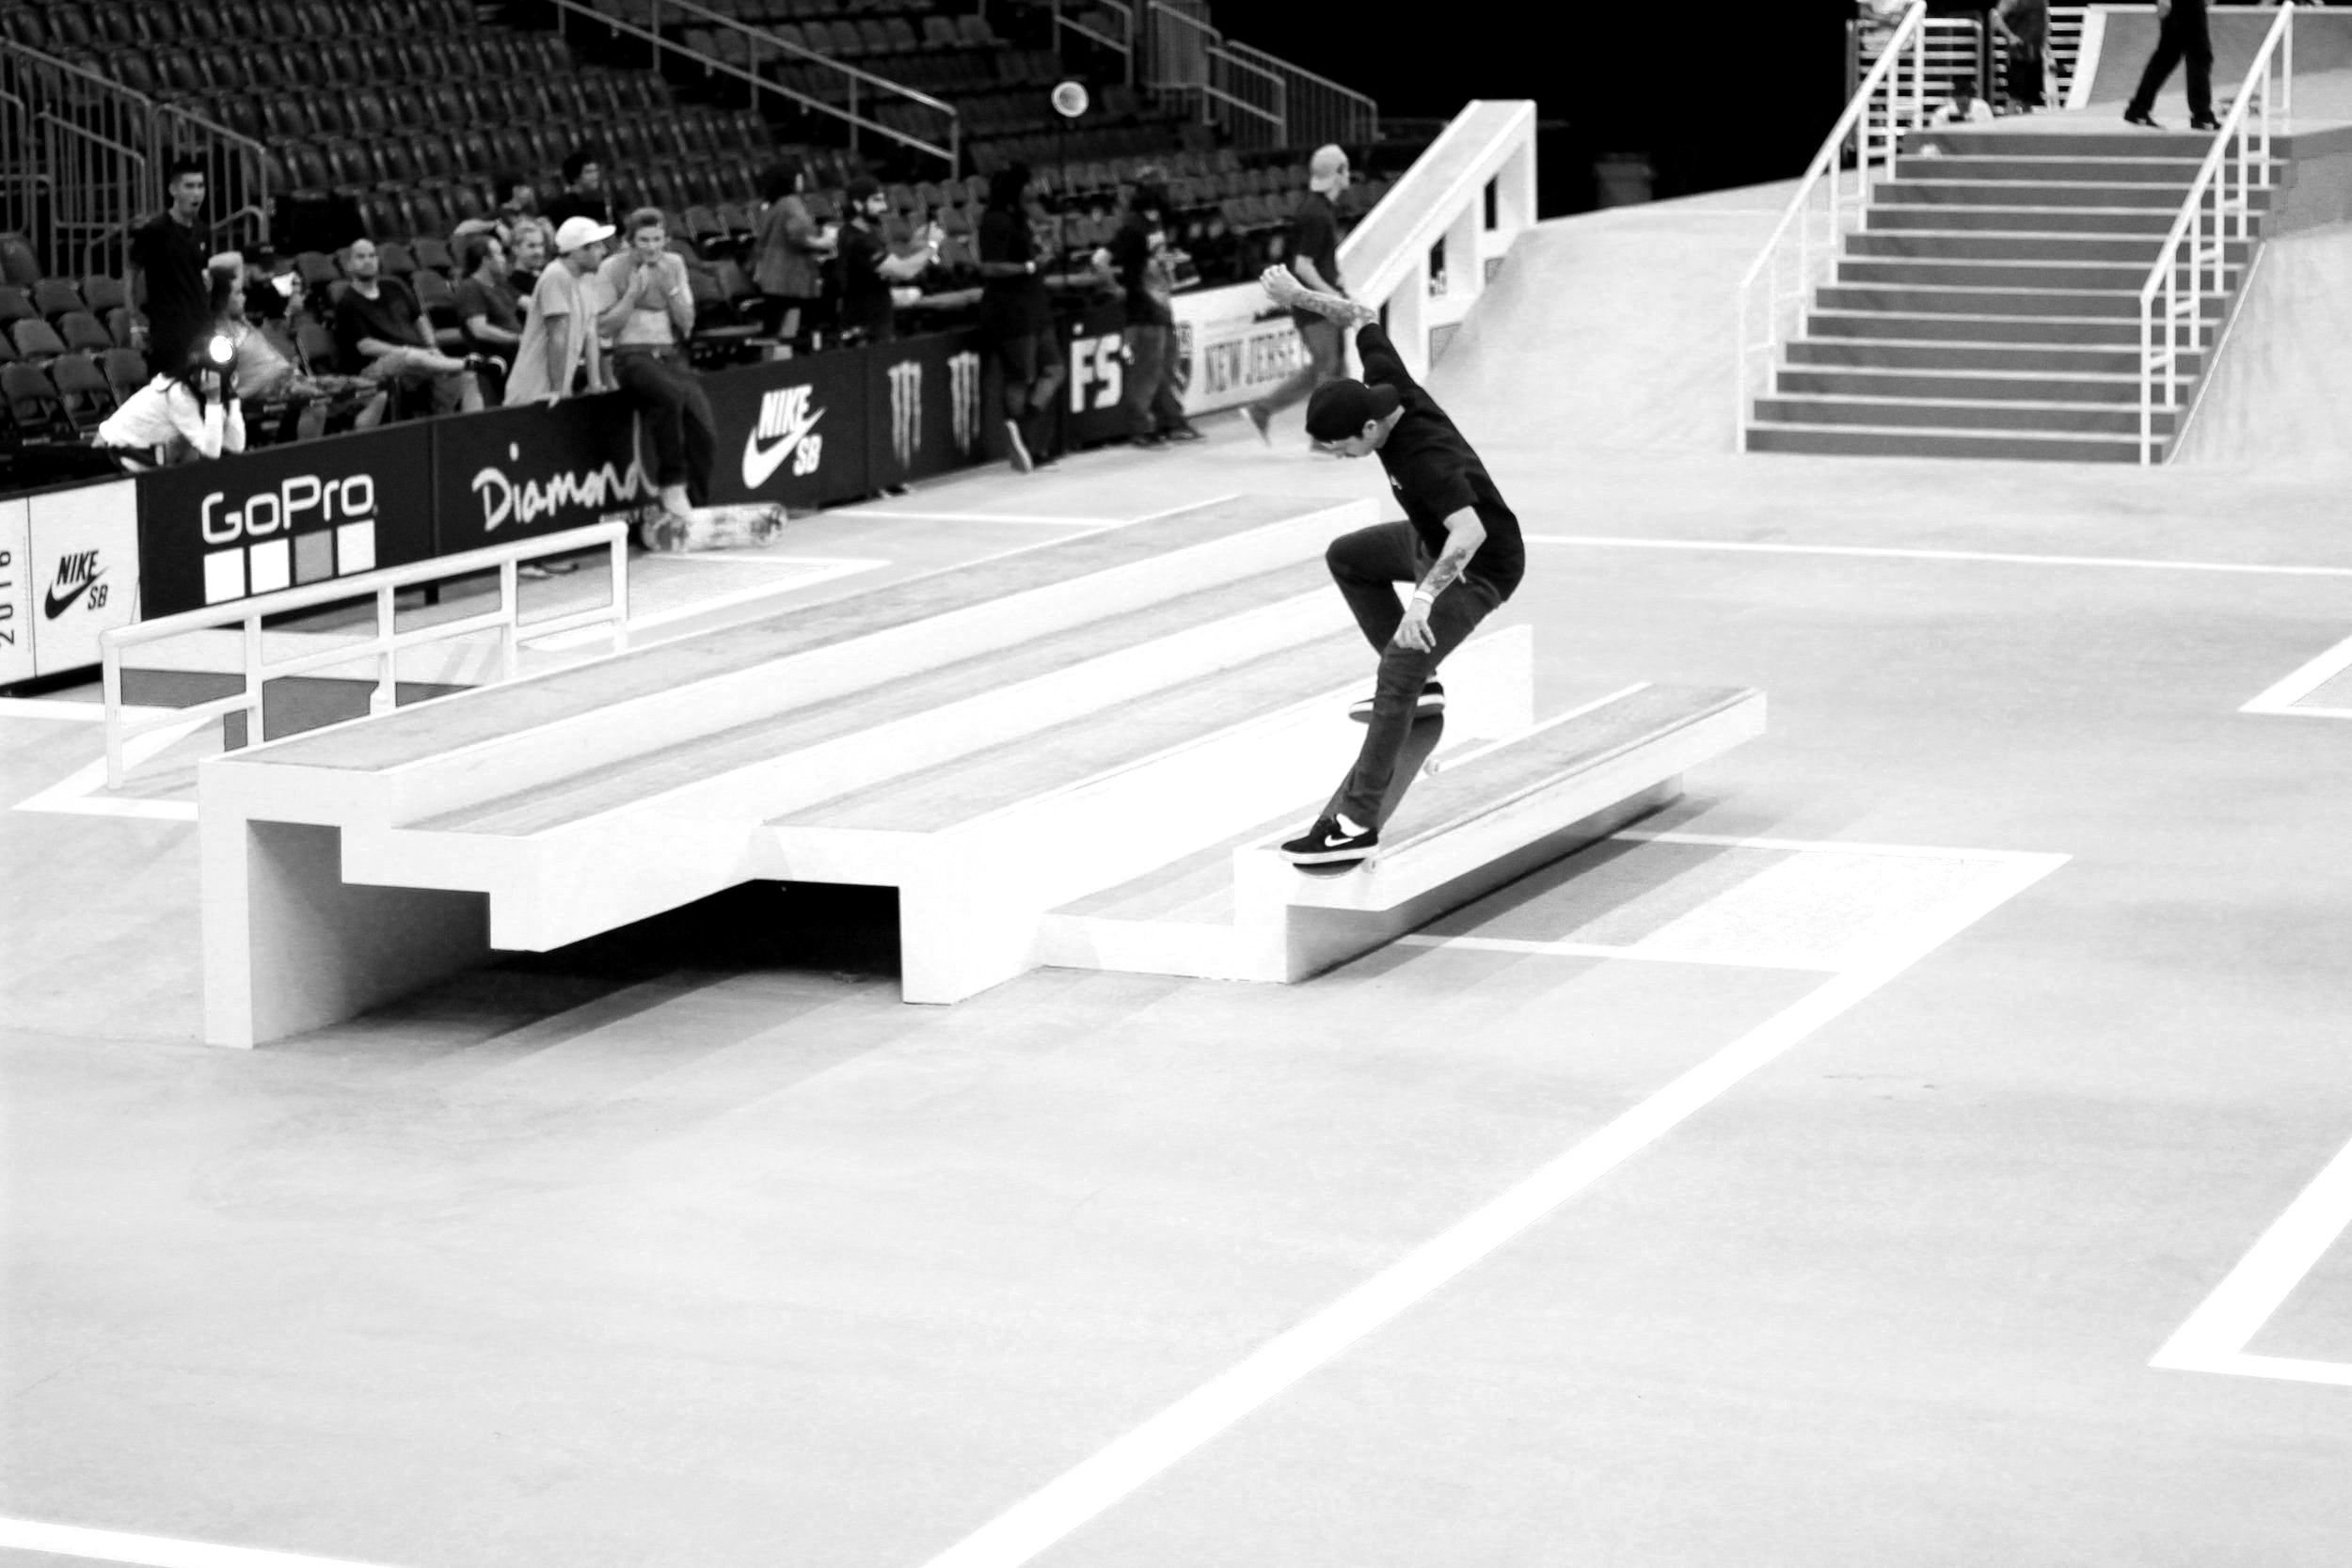 Studio_Bloq-Nike_SB-Street_League-3.jpg